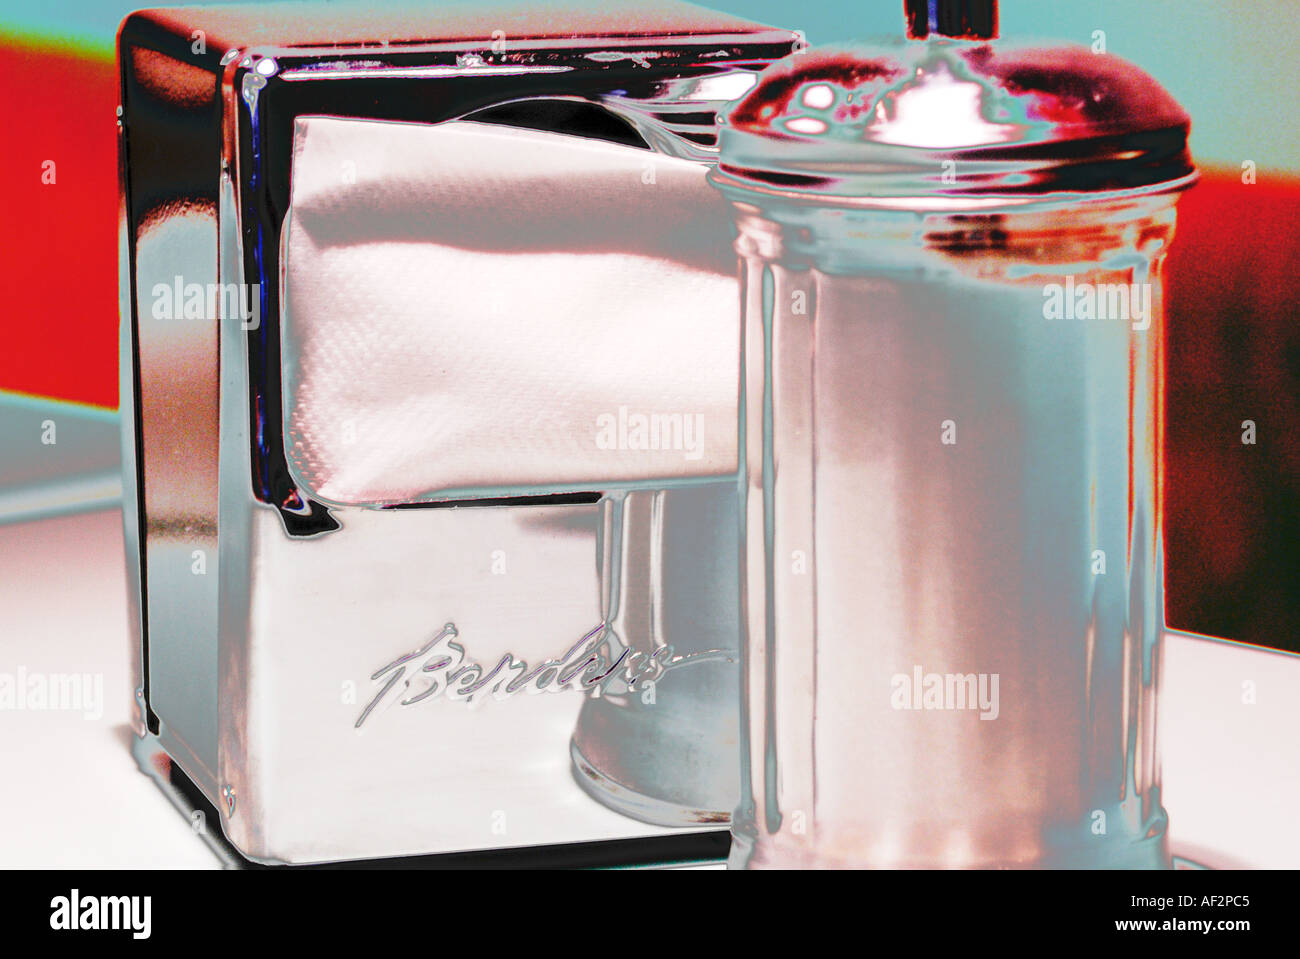 Napkin Holder And Sugar Dispenser On A Restaurant Table Stock Photo Alamy